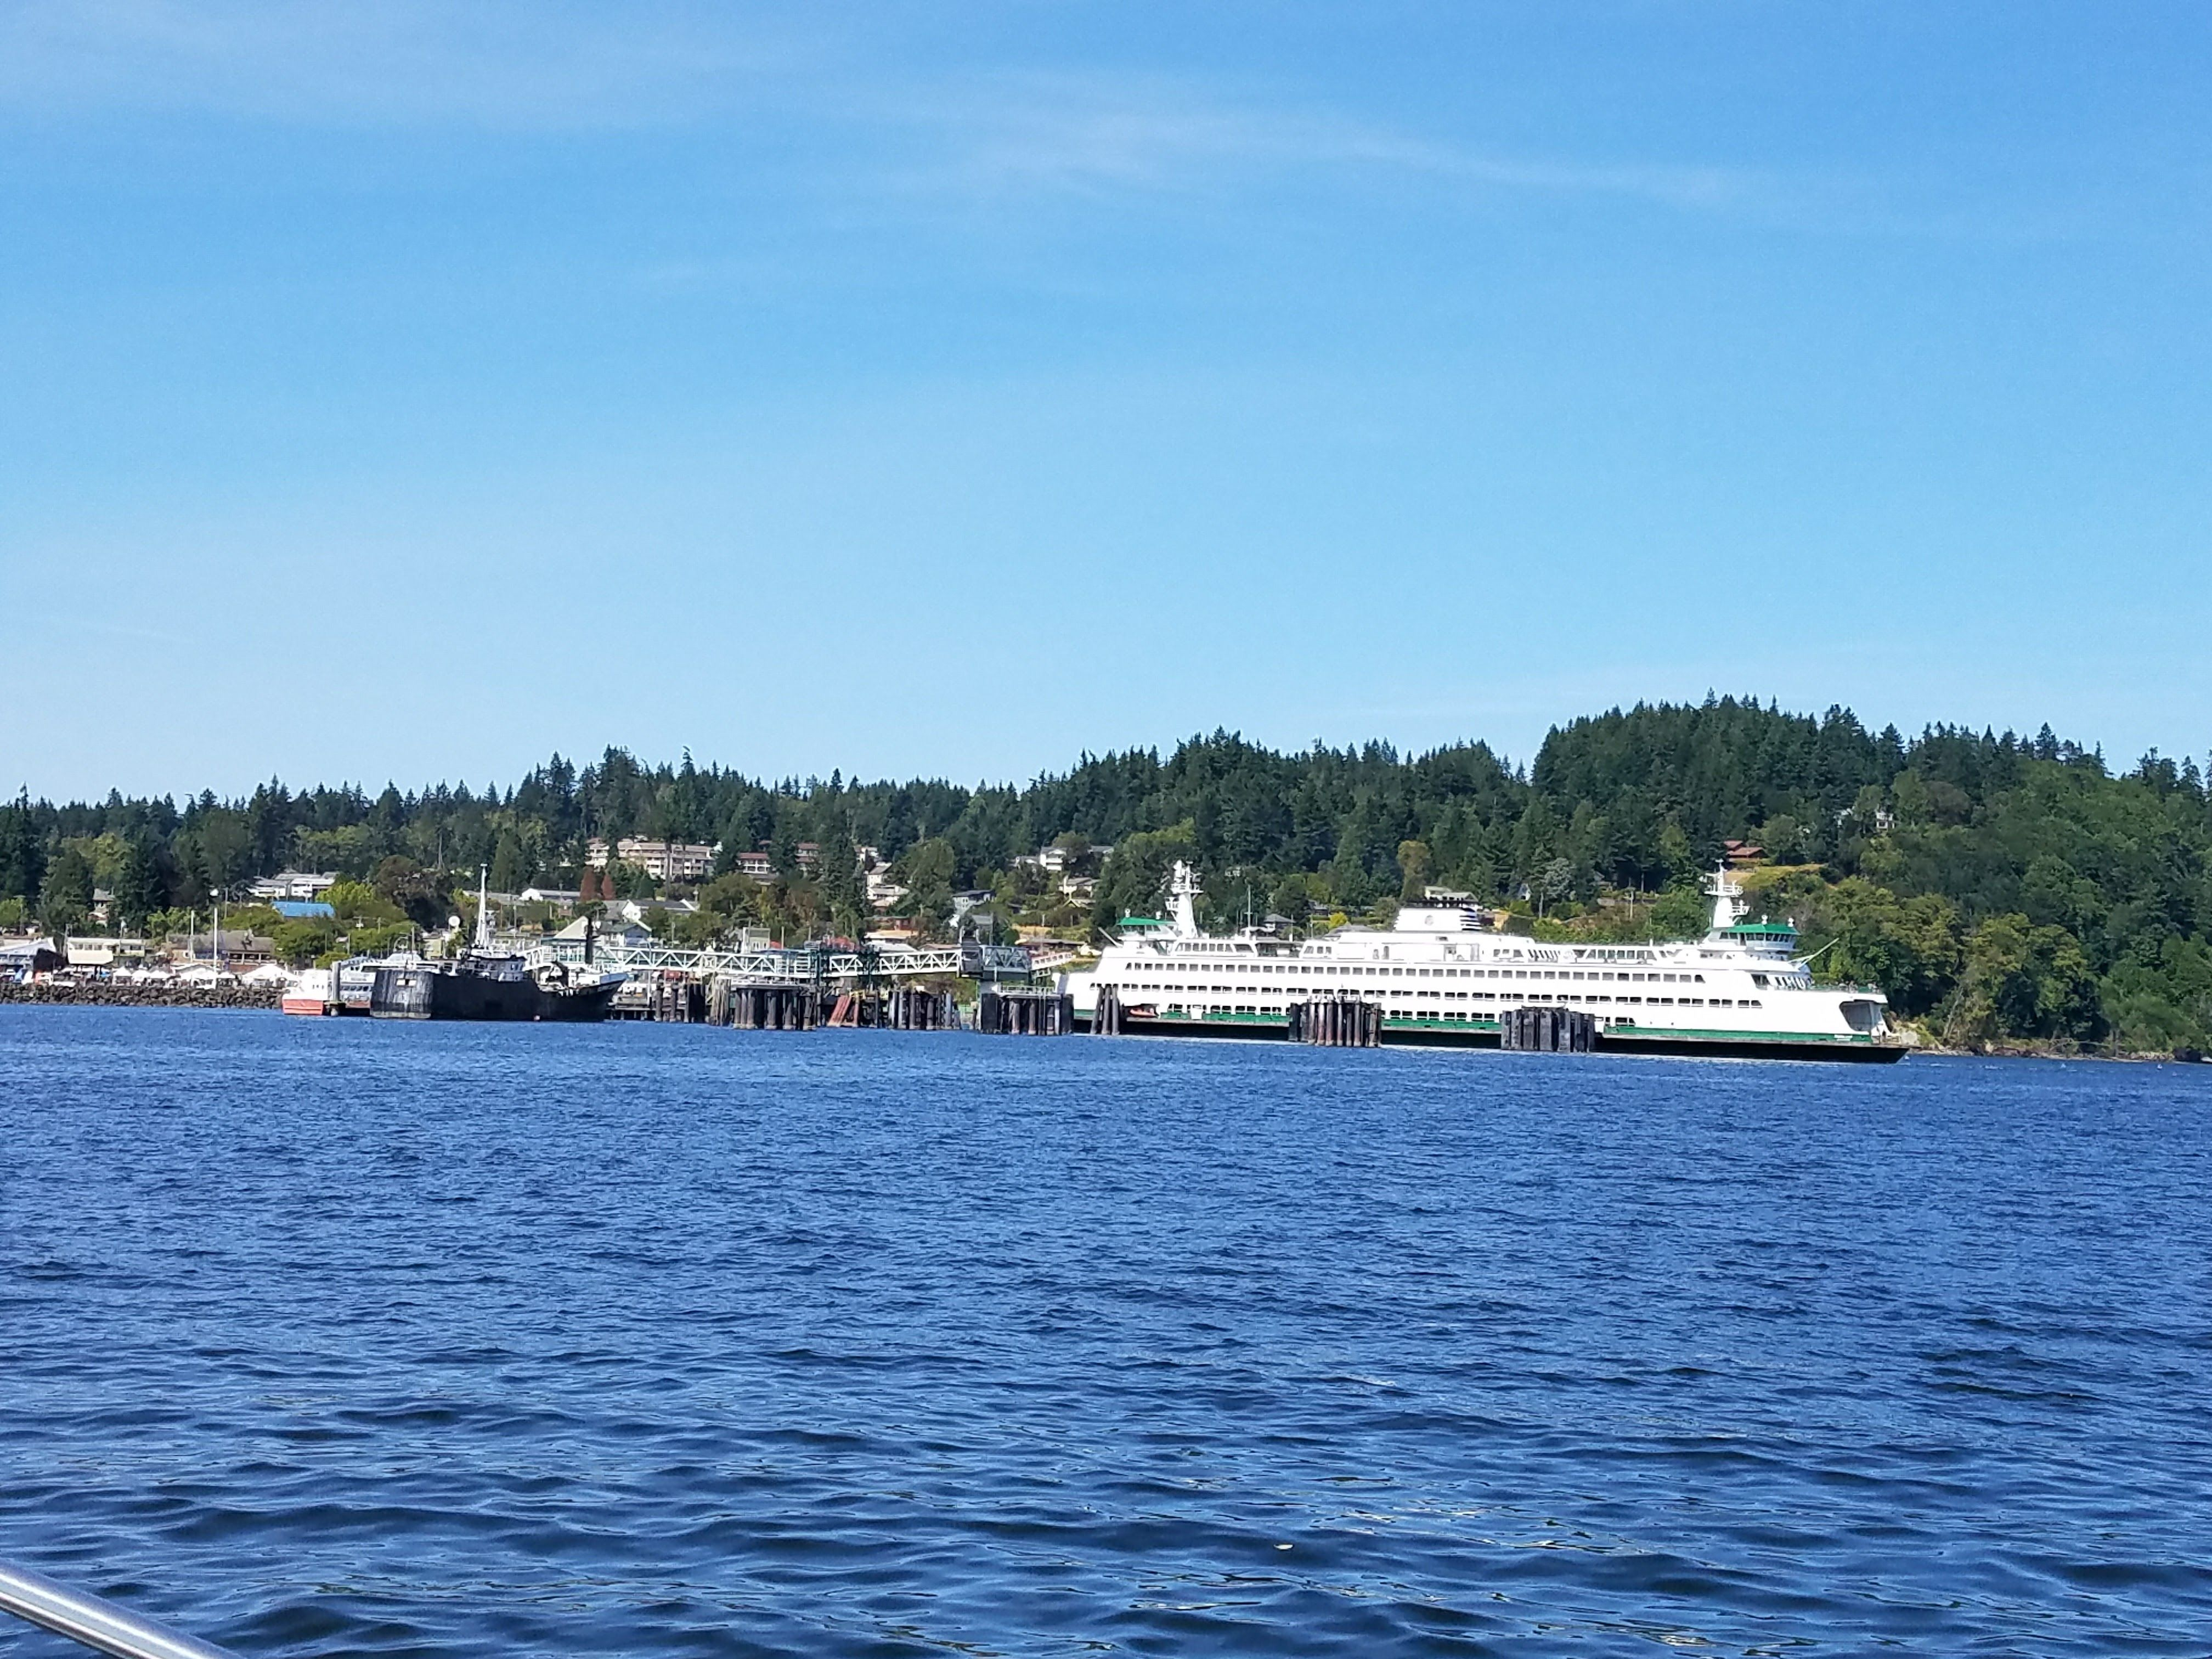 Pin by Boating Journey on Pacific Northwest Boating | Travel